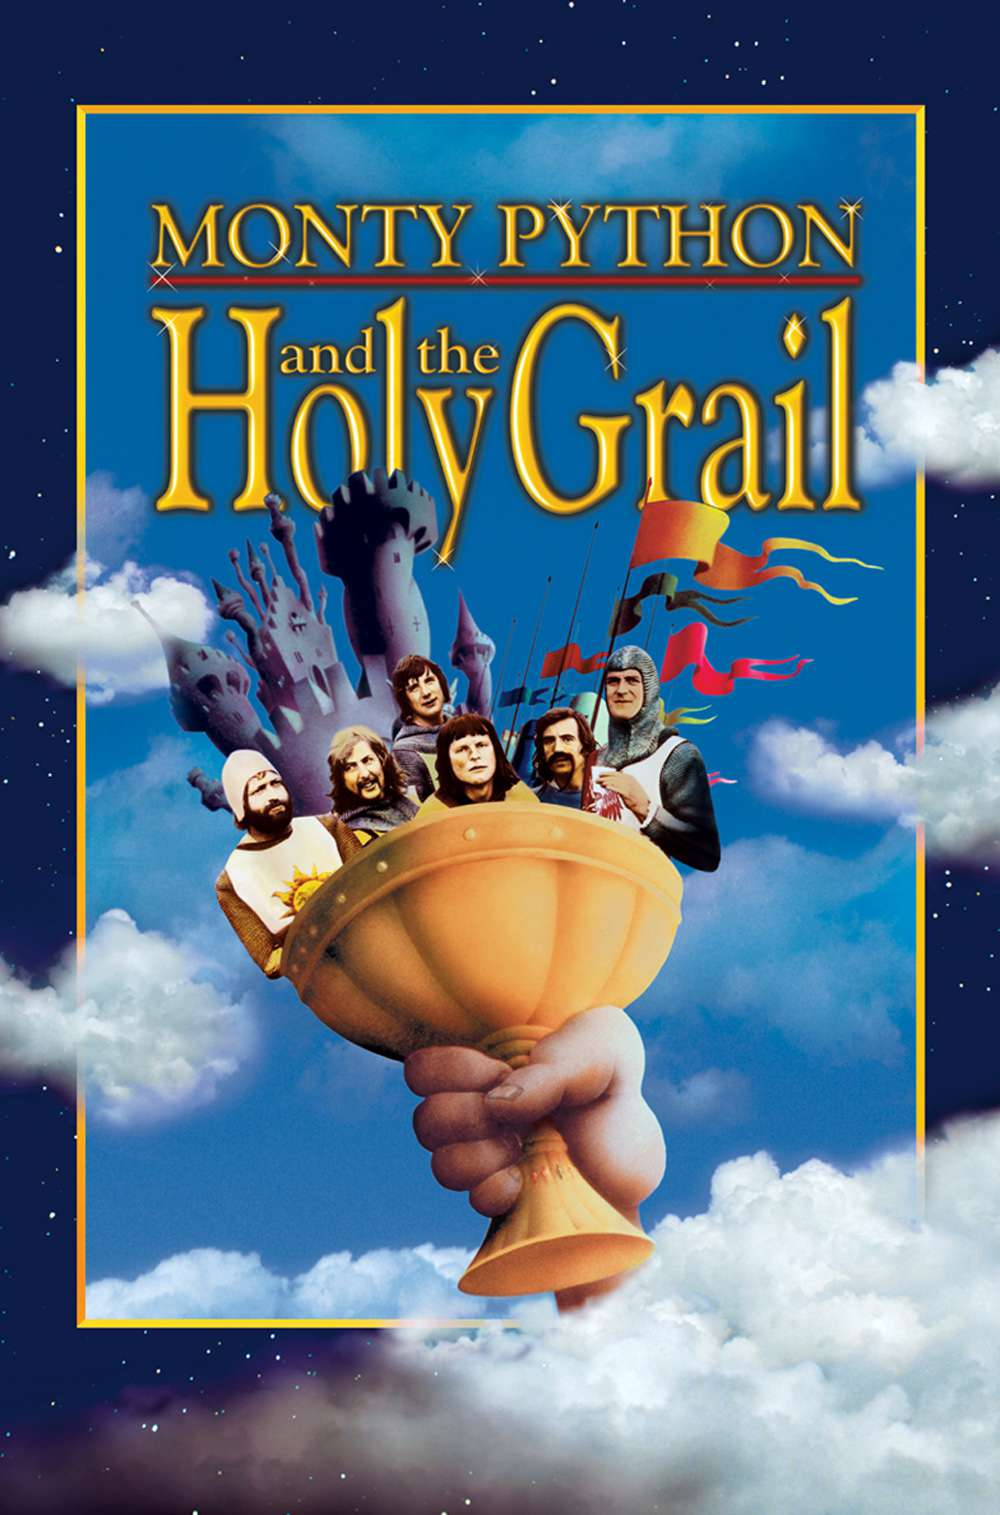 Poster for Monty Python and the Holy Grail (1975)